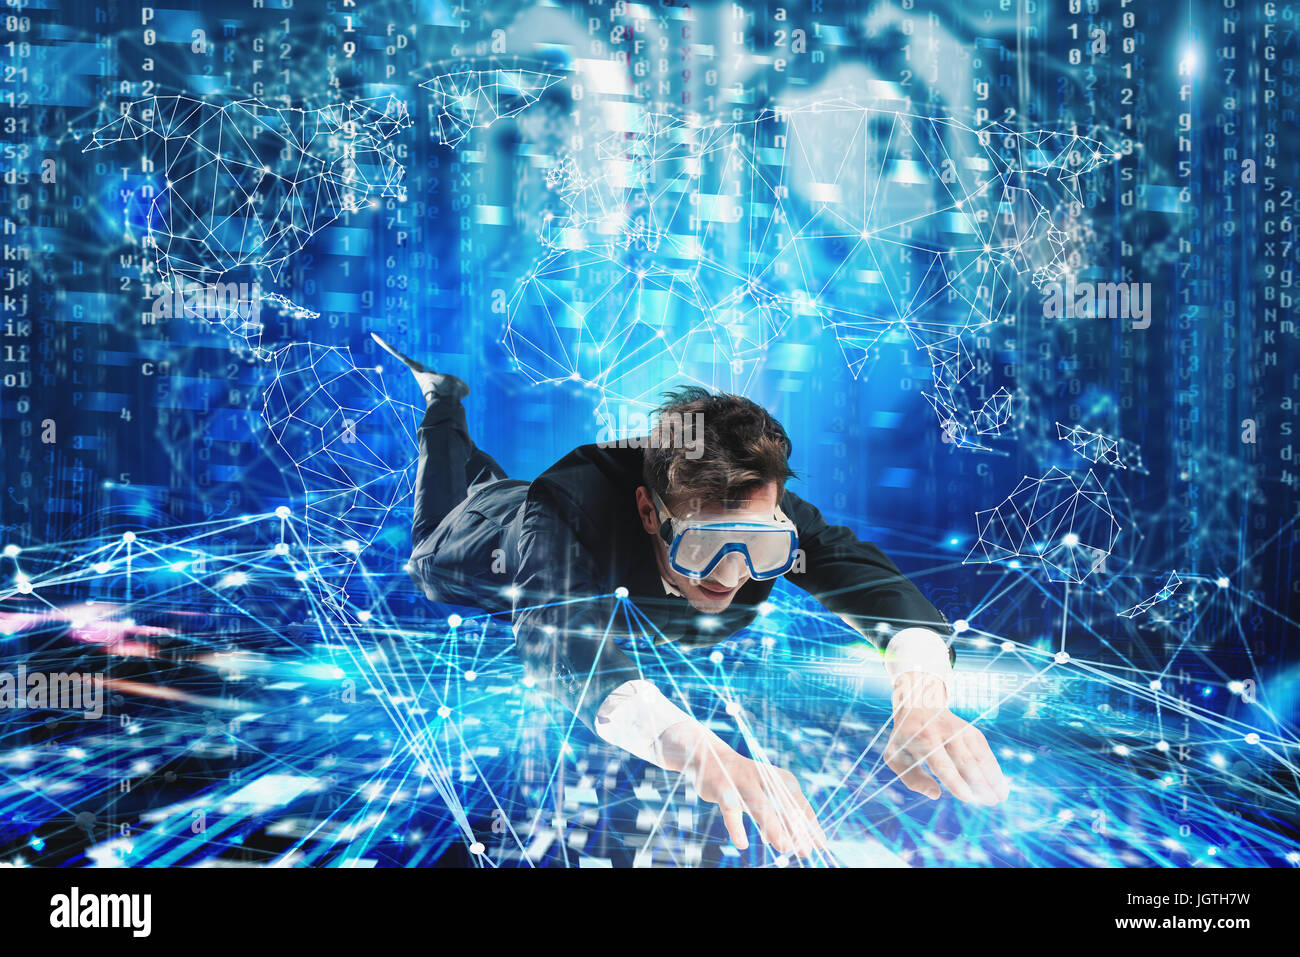 Businessman surfing the internet underwater with mask. Internet exploration concept - Stock Image